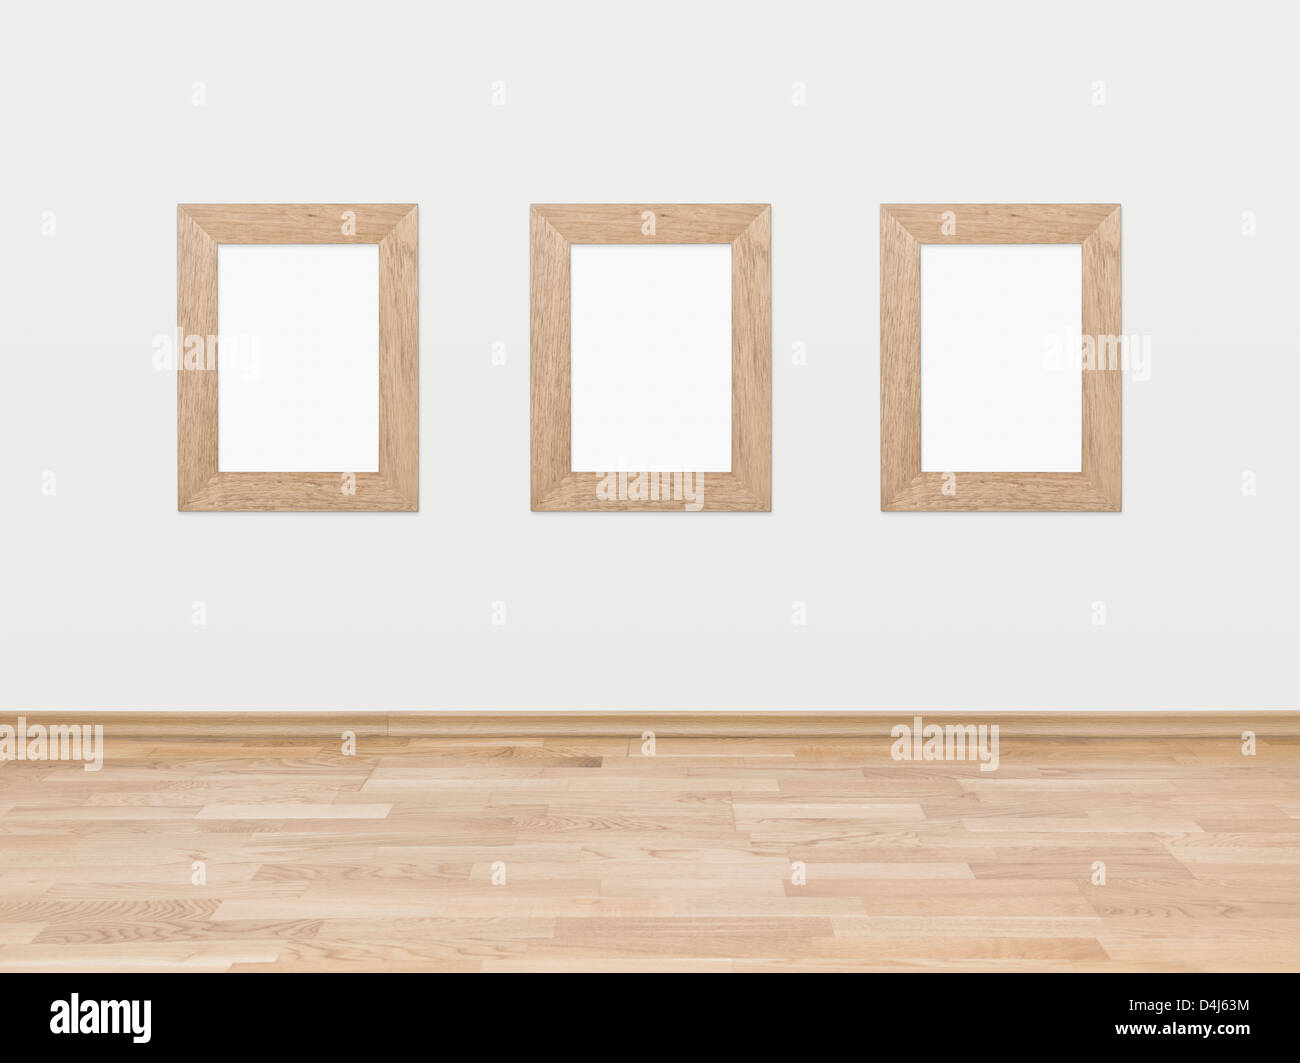 Three empty rectangular wooden frames displayed on a white wall above a hardwood wooden floor. - Stock Image